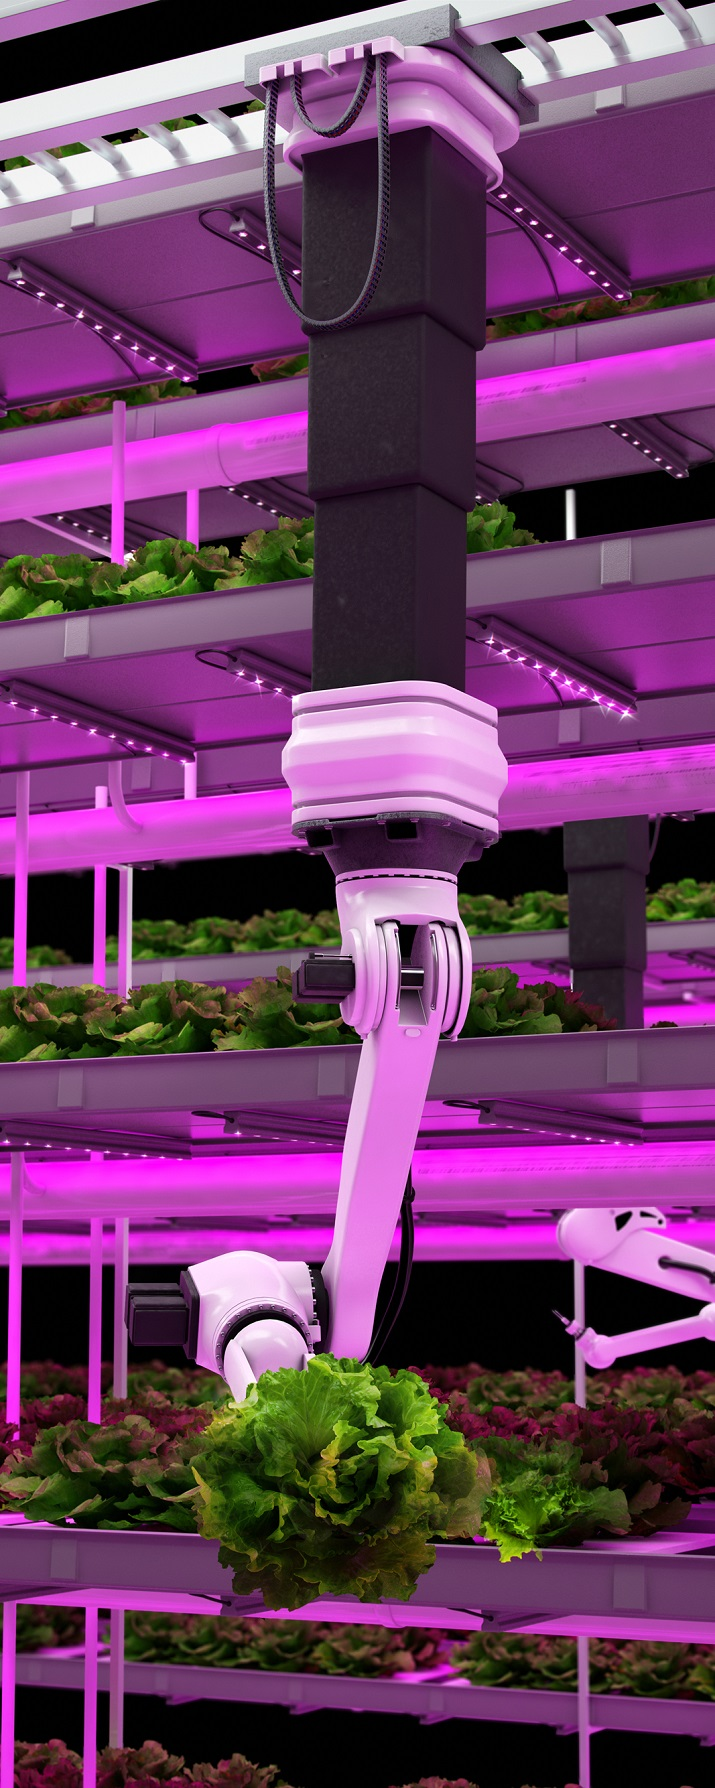 As part of its vision for a smart city, urban farms using LED lights would be able to provide food year-round for a growing number of citizens. Source: Philips Lighting